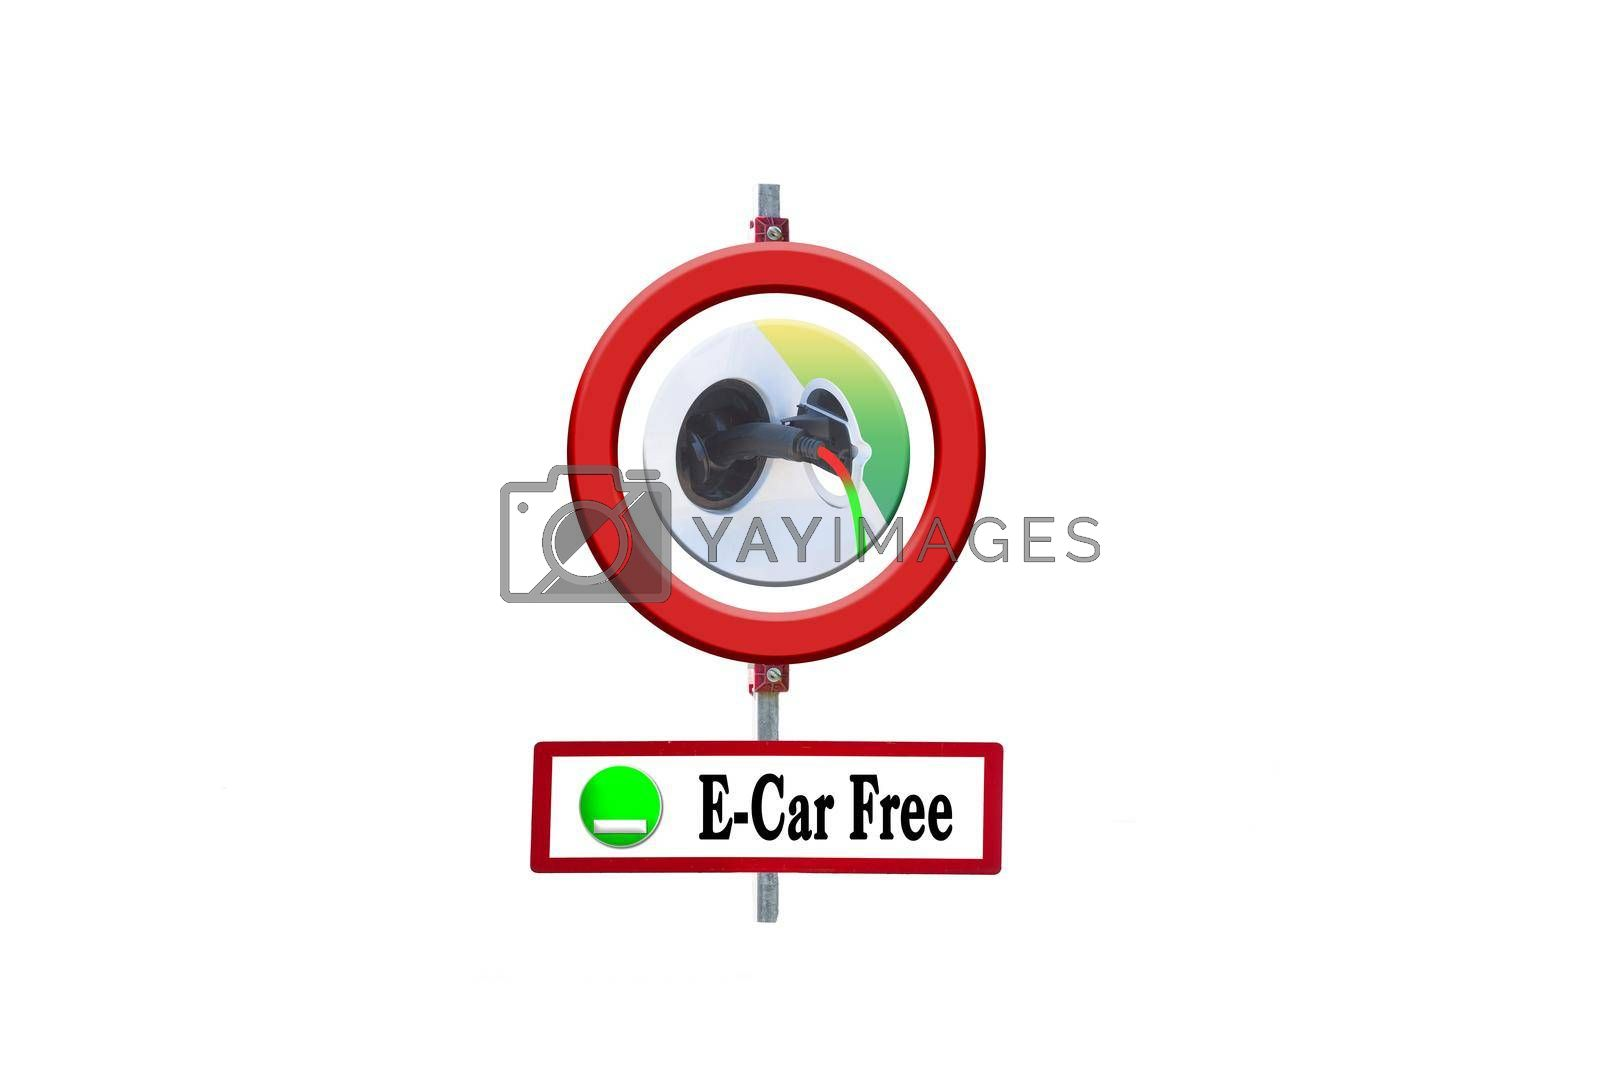 Royalty free image of Street signs diesel driving ban and e-car free         by JFsPic